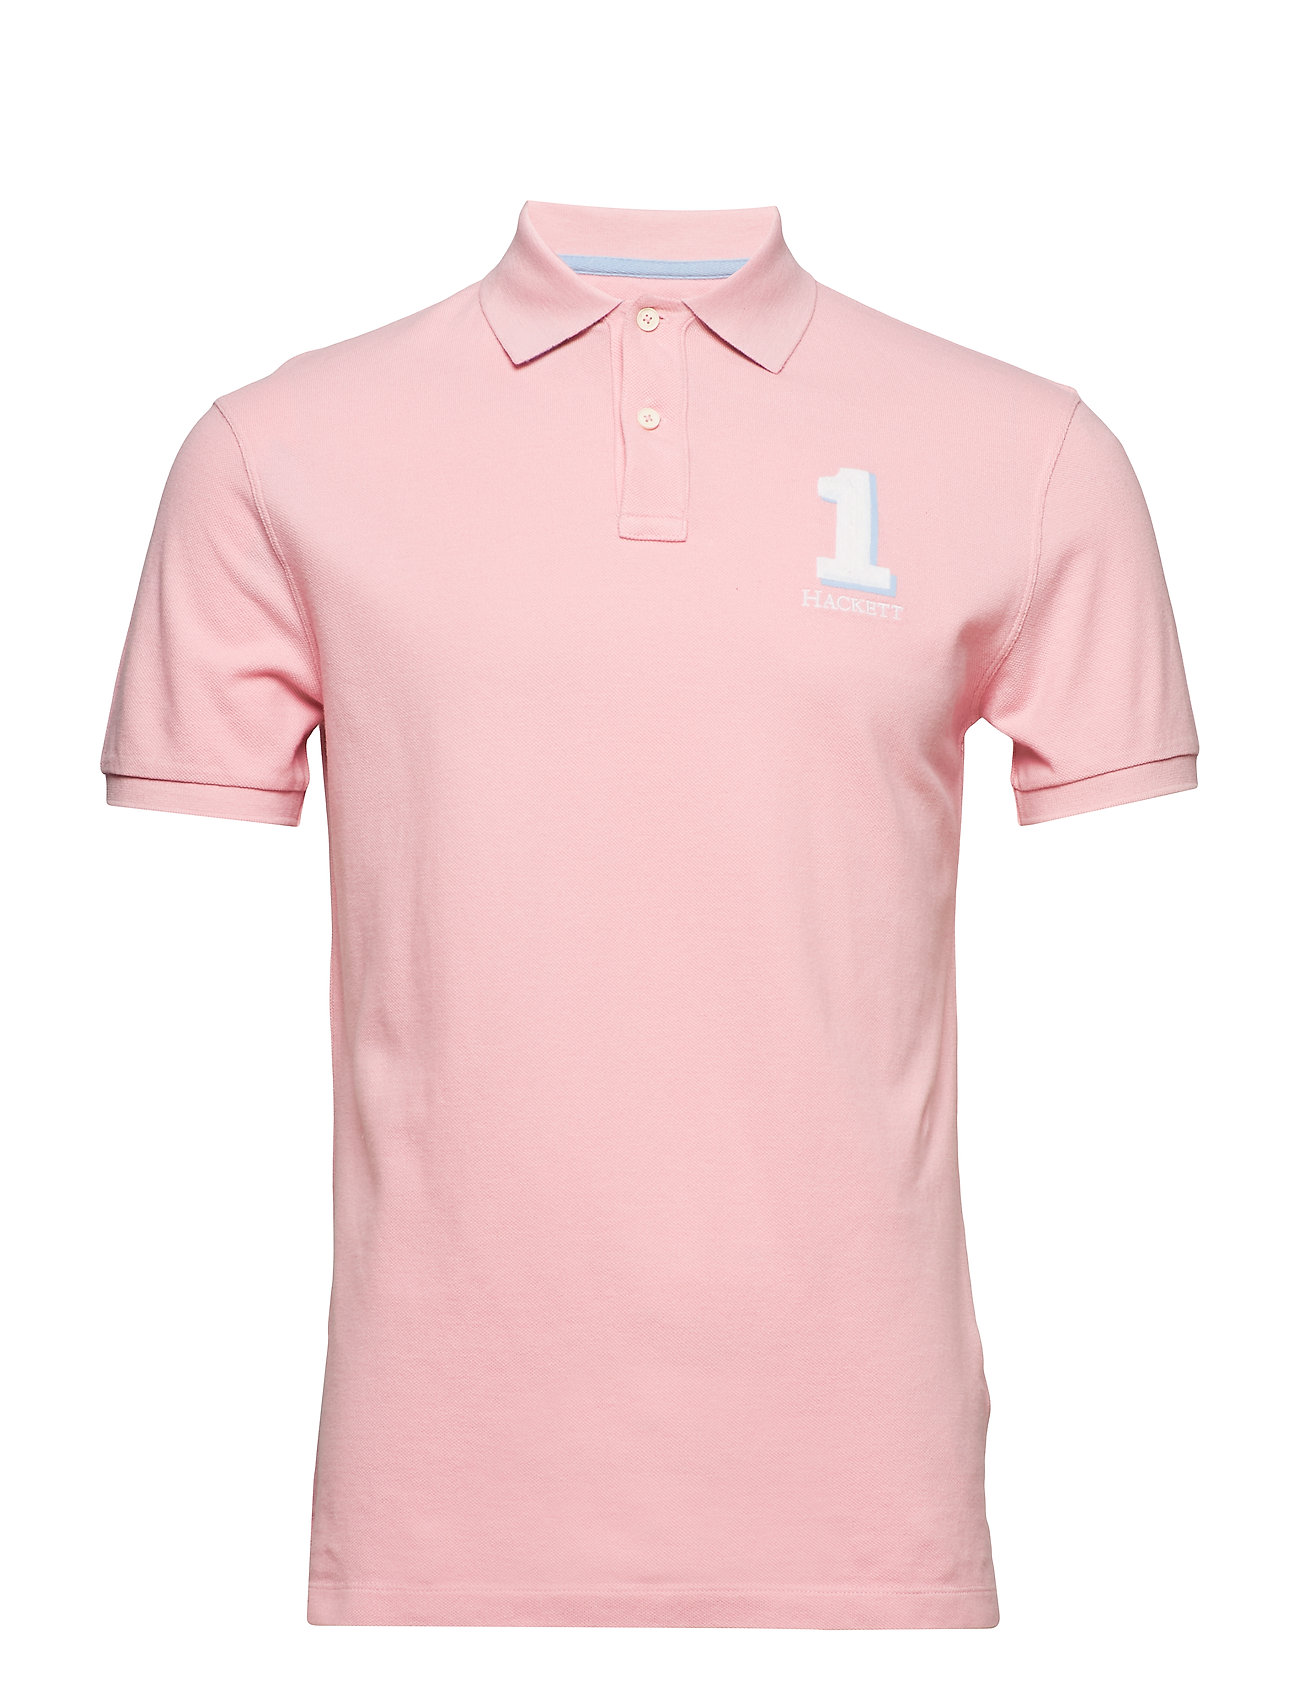 Hackett NEW CLASSIC - 300PALE PINK